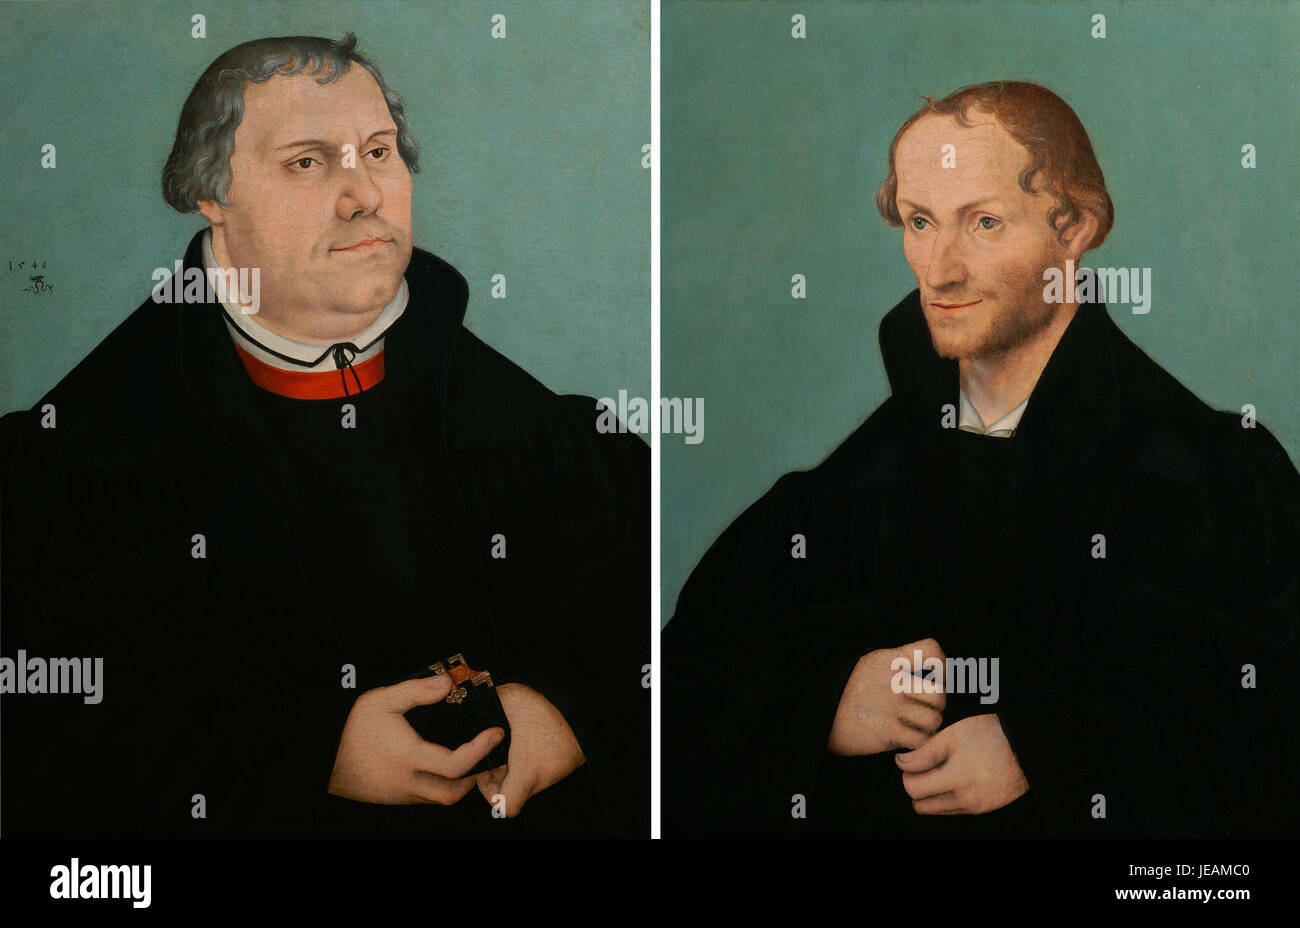 Lucas Cranach d.J. - Martin Luther & Philippe Melanchthon (1546) - Stock Image